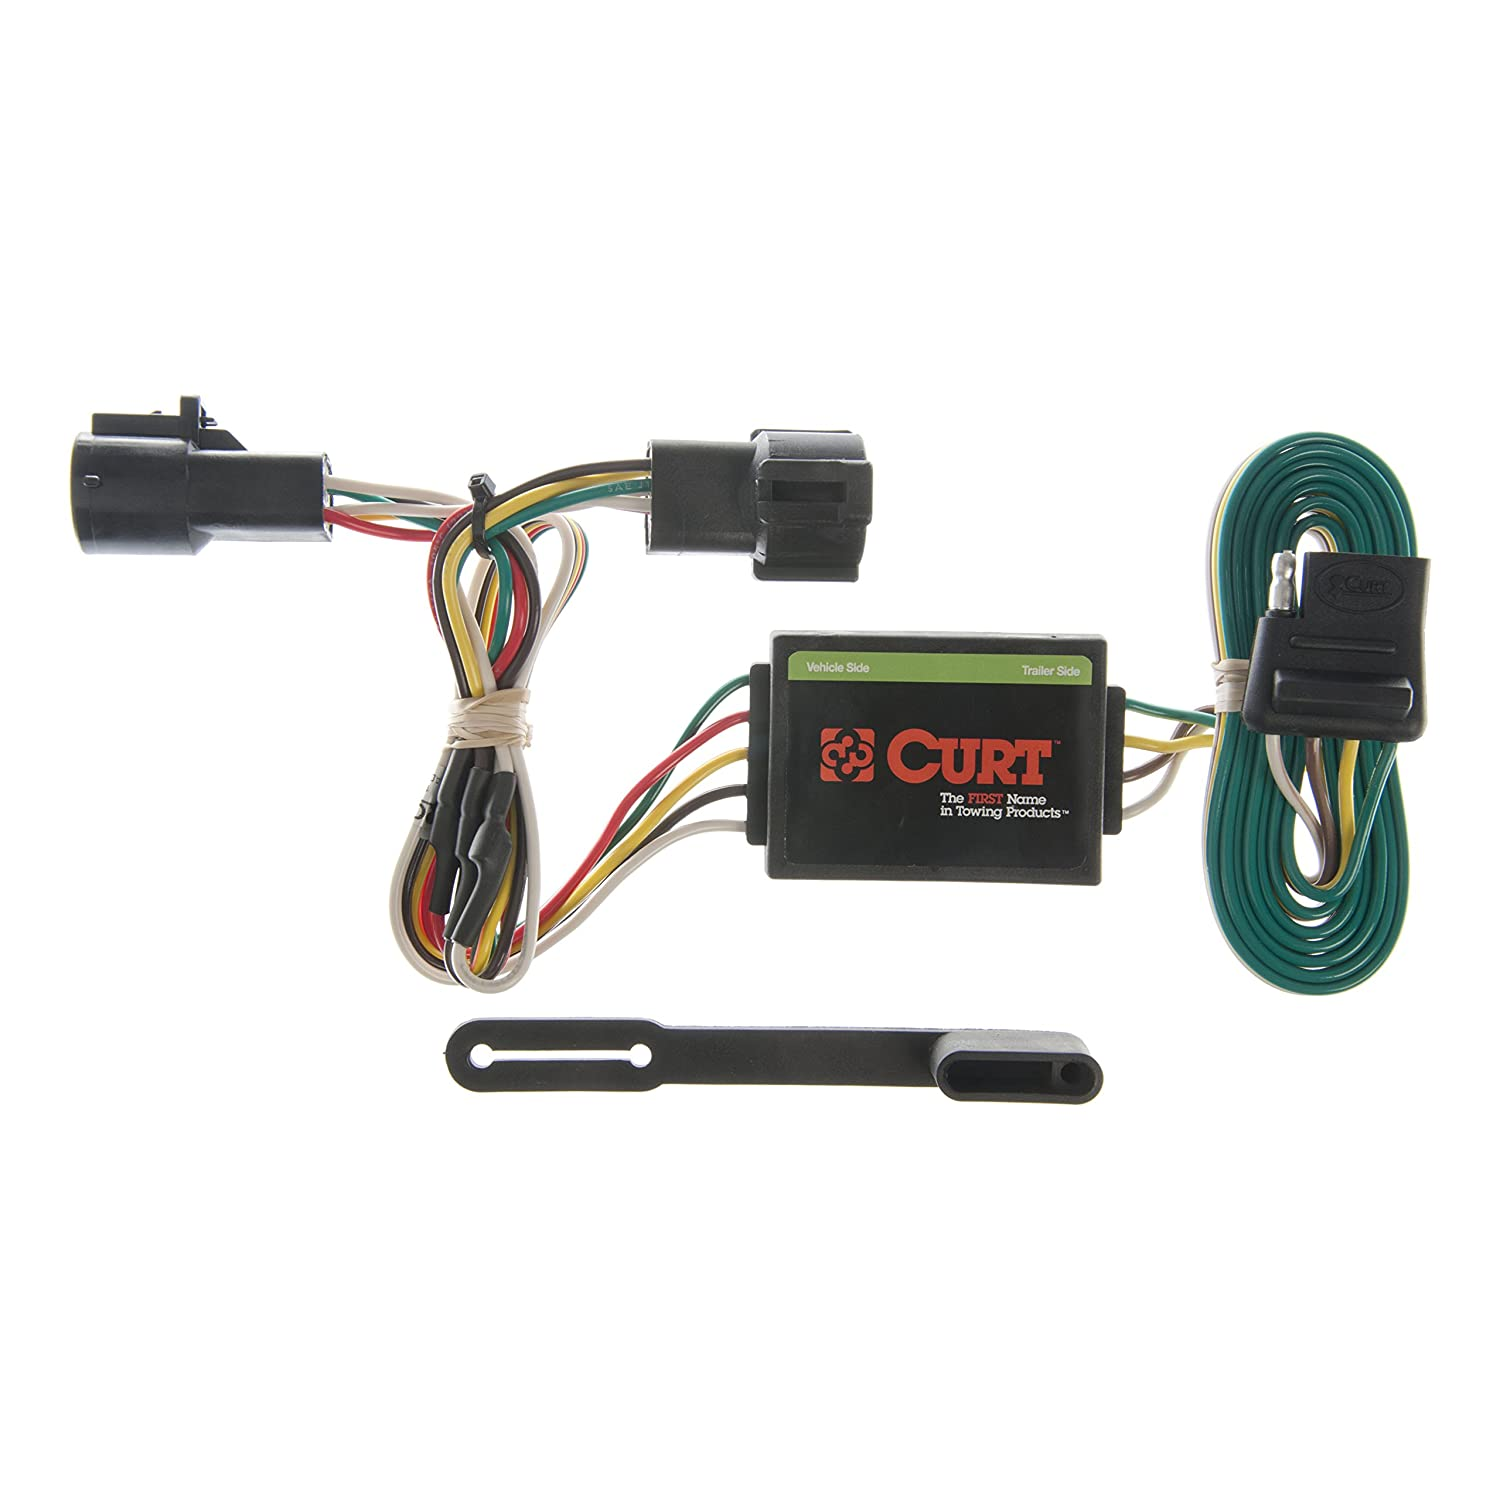 curt 55325 vehicle side custom 4 pin trailer wiring harness for select ford ranger, mazda b2300, b3000, b4000 Trailer Connector 2006 Ford Ranger